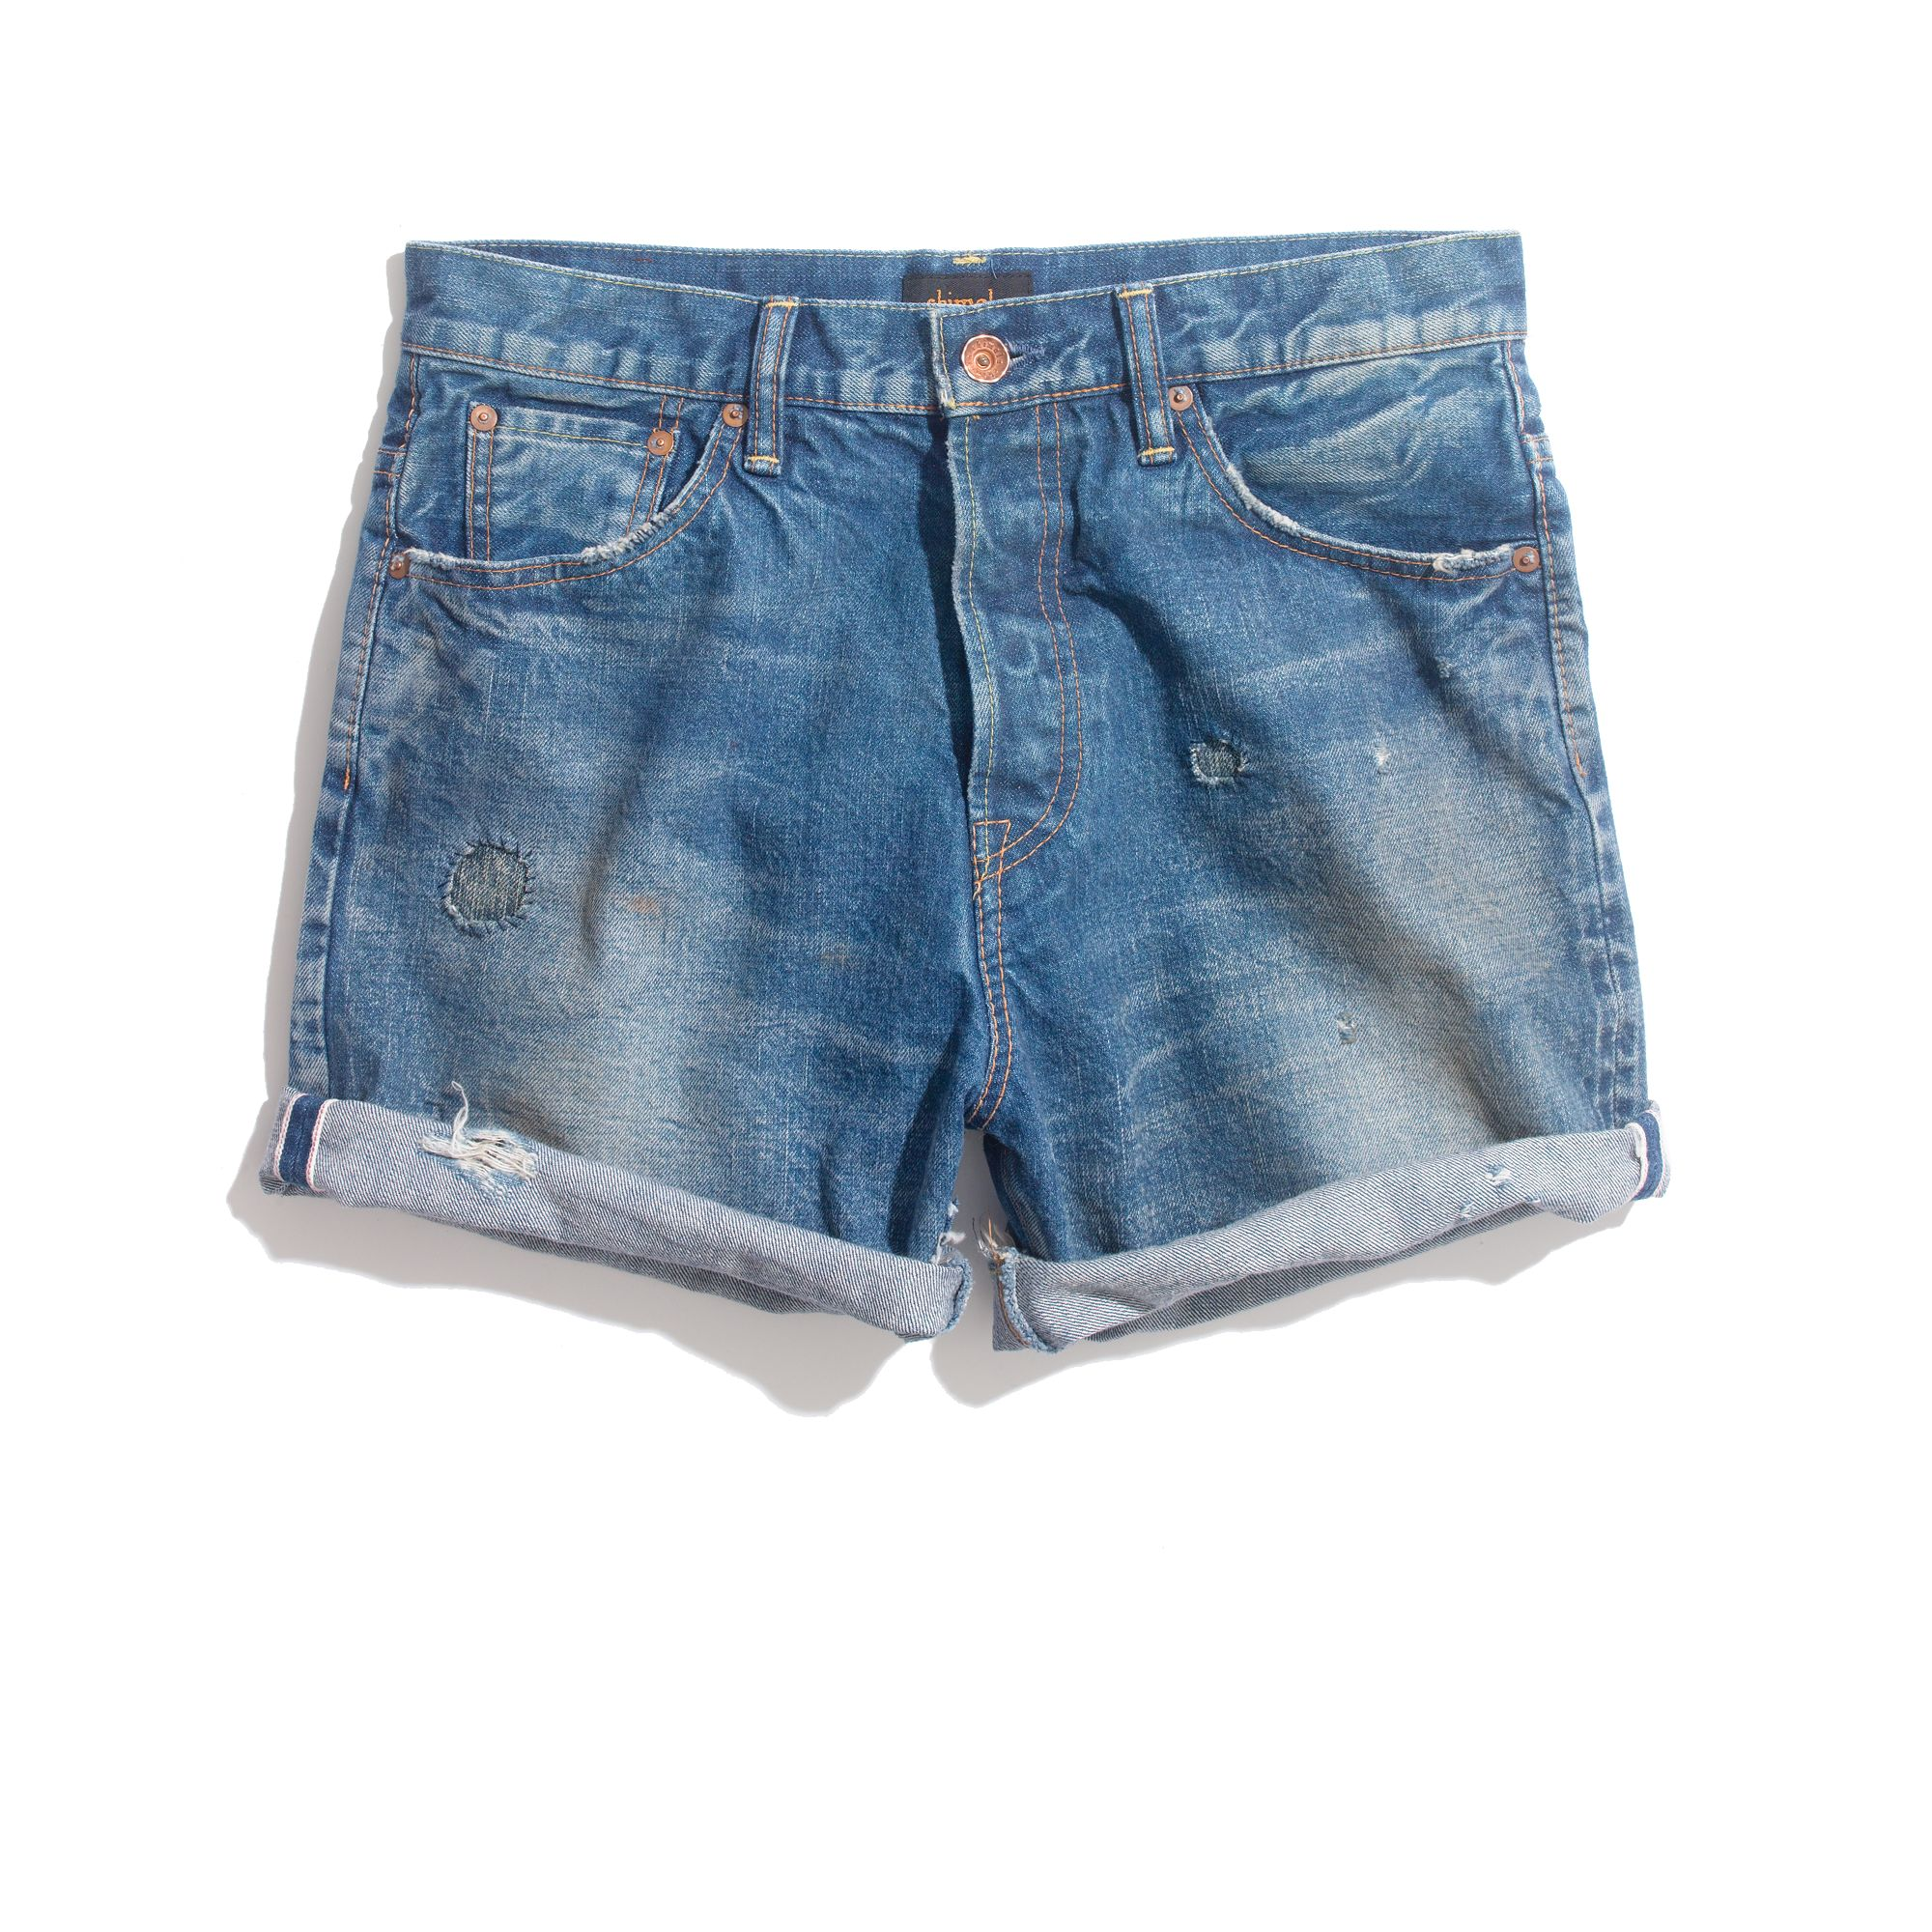 Madewell Denim Boy Shorts in Blue | Lyst